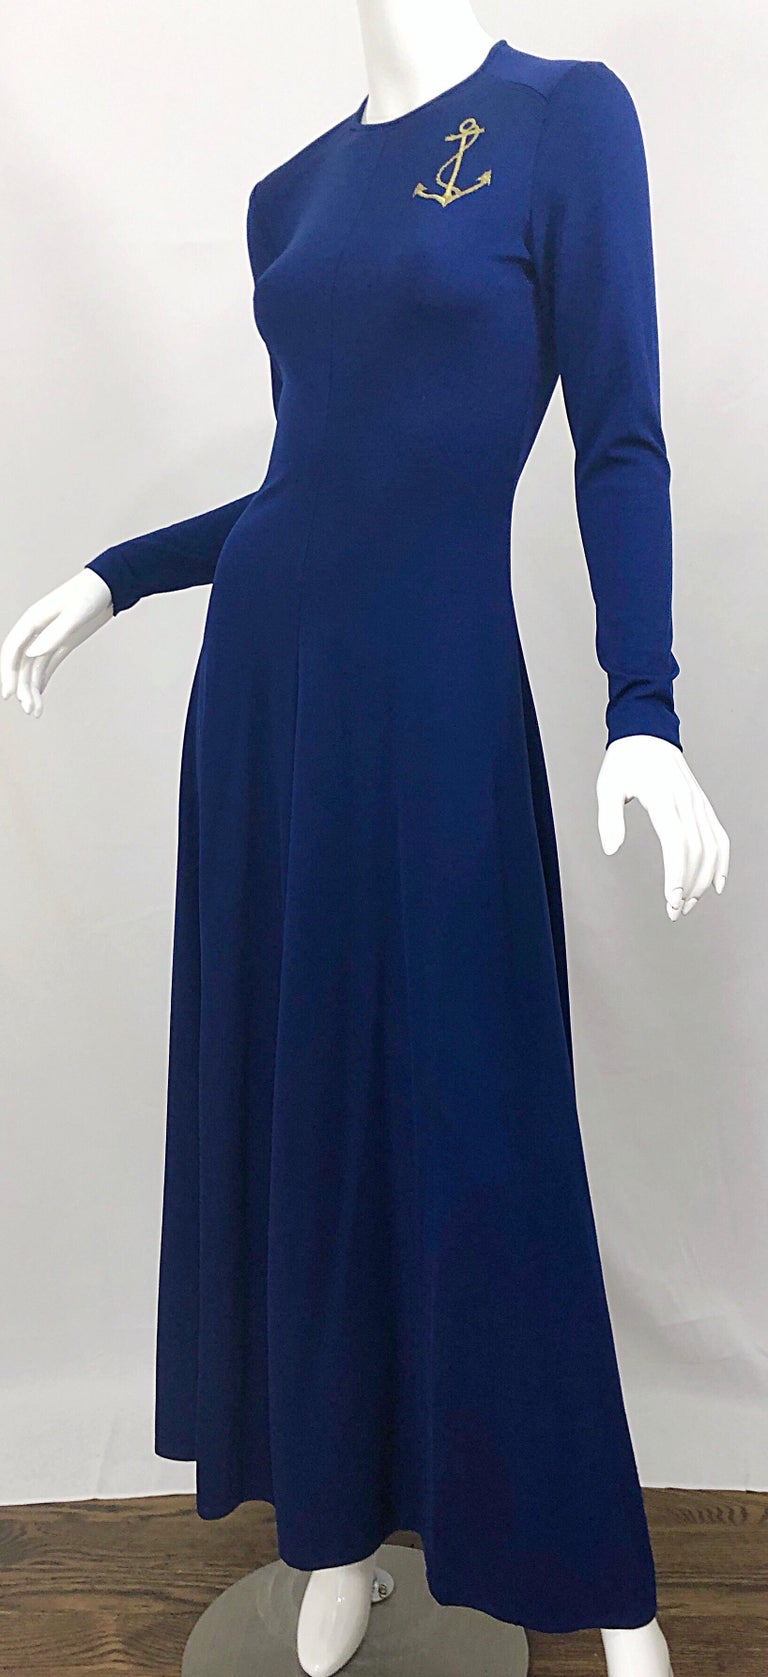 Amazing 1970s Nautical Navy Blue + Gold Anchor Patch Vintage Jersey maxi Dress For Sale 4